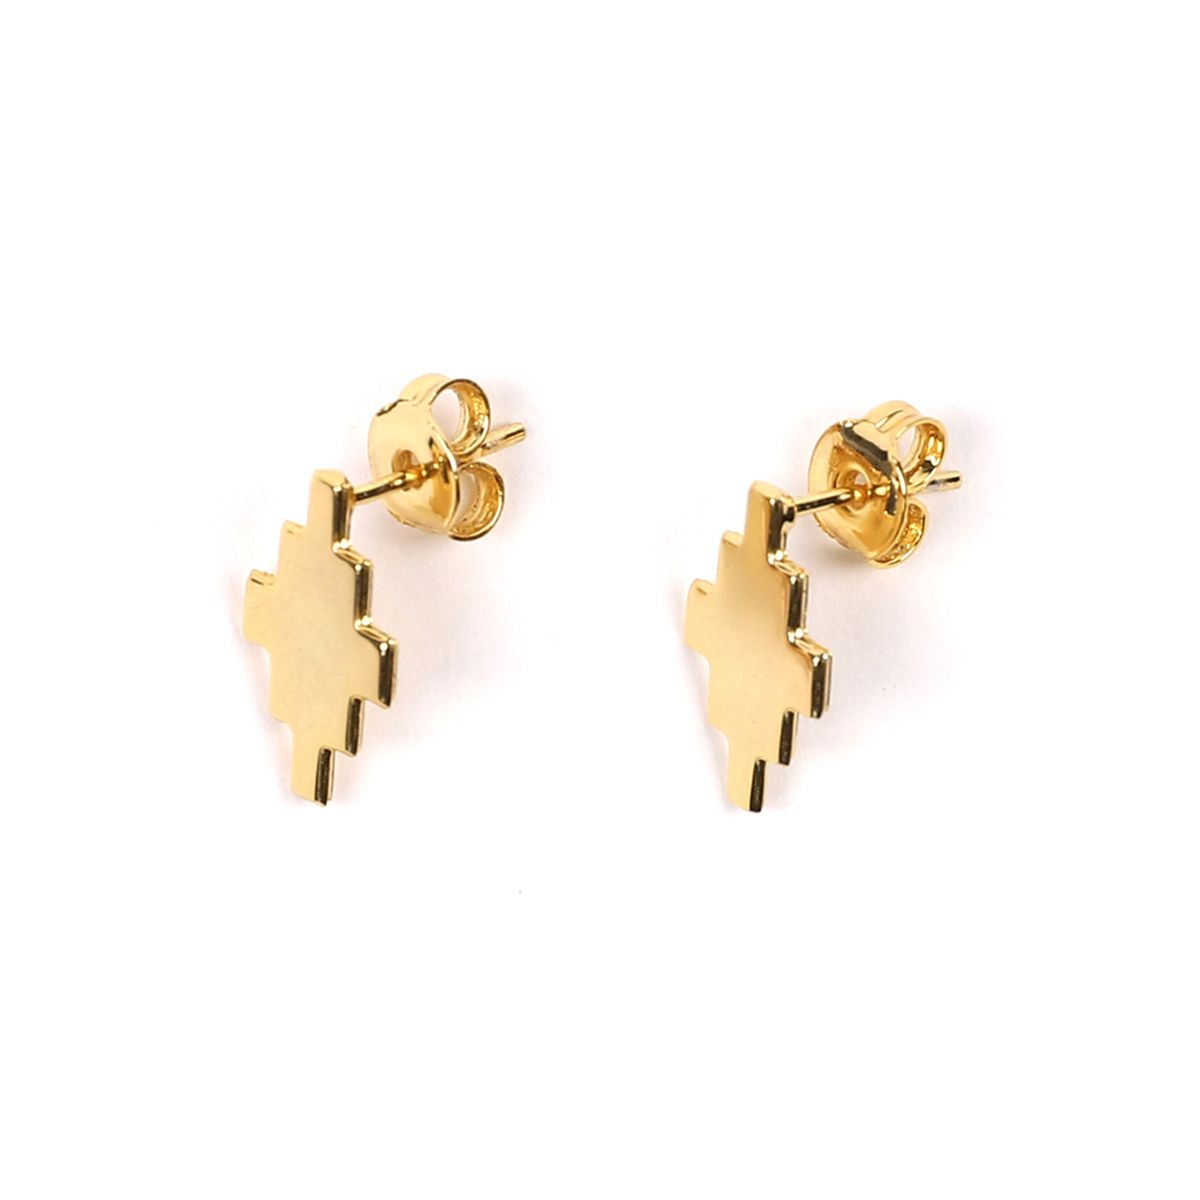 MARCELO BURLON CROSS EARRINGS / 7600 : GOLD NO COLOR